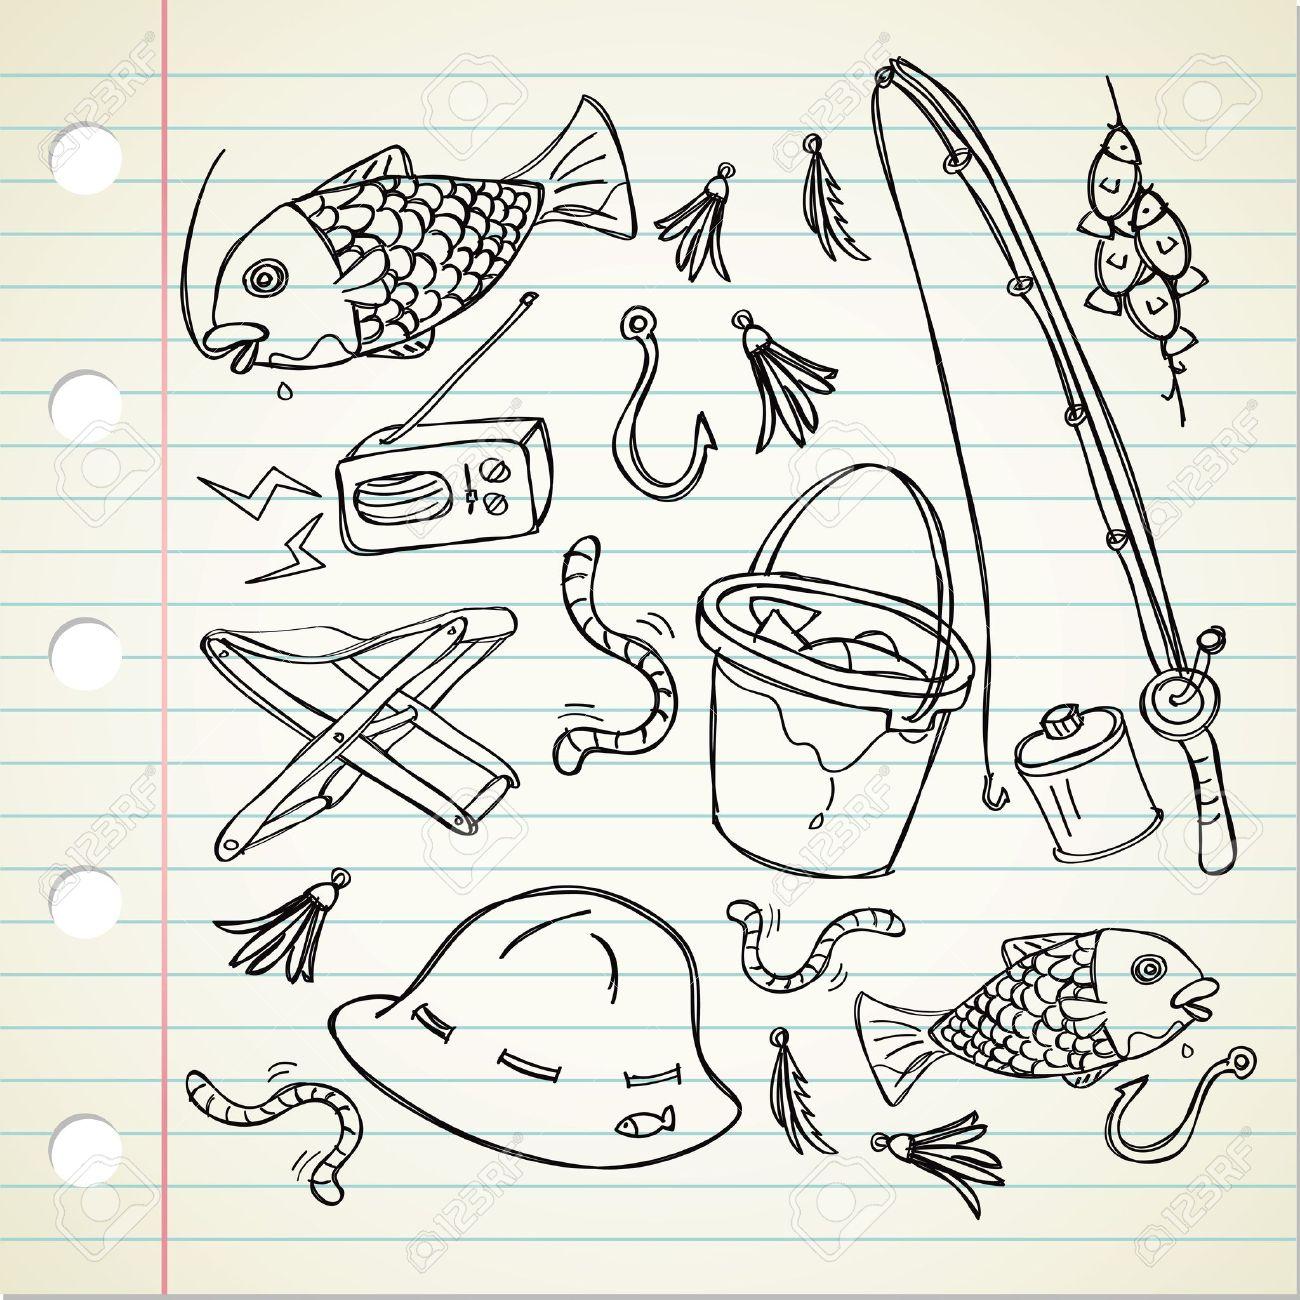 1300x1300 Fishing Stuff In Doodle Style Royalty Free Cliparts, Vectors,